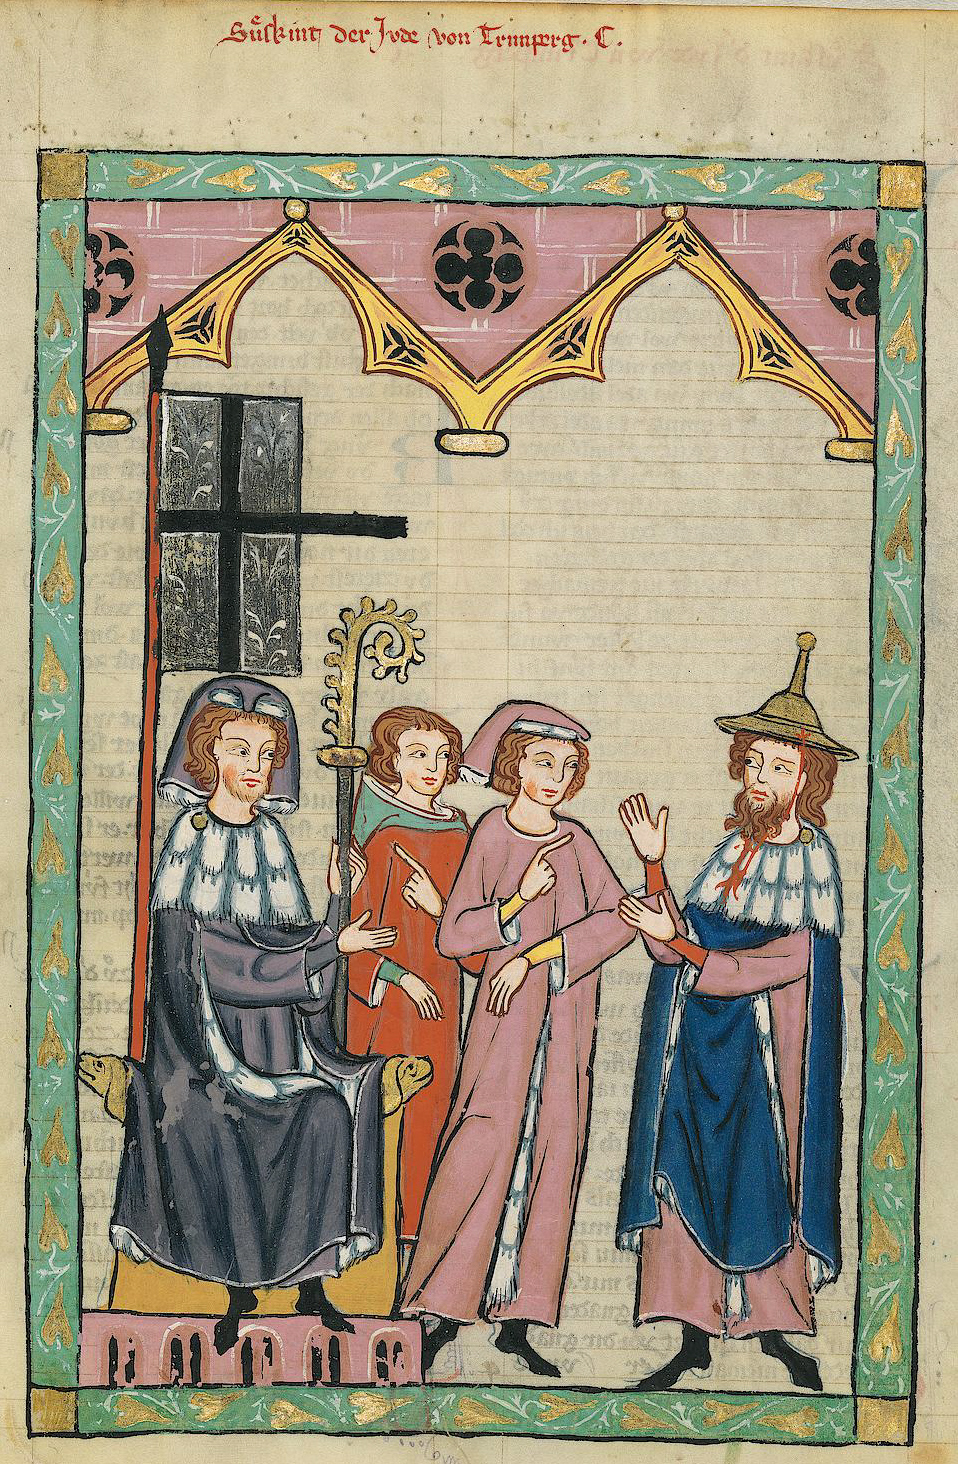 Treatment of Jews in the Middle Ages